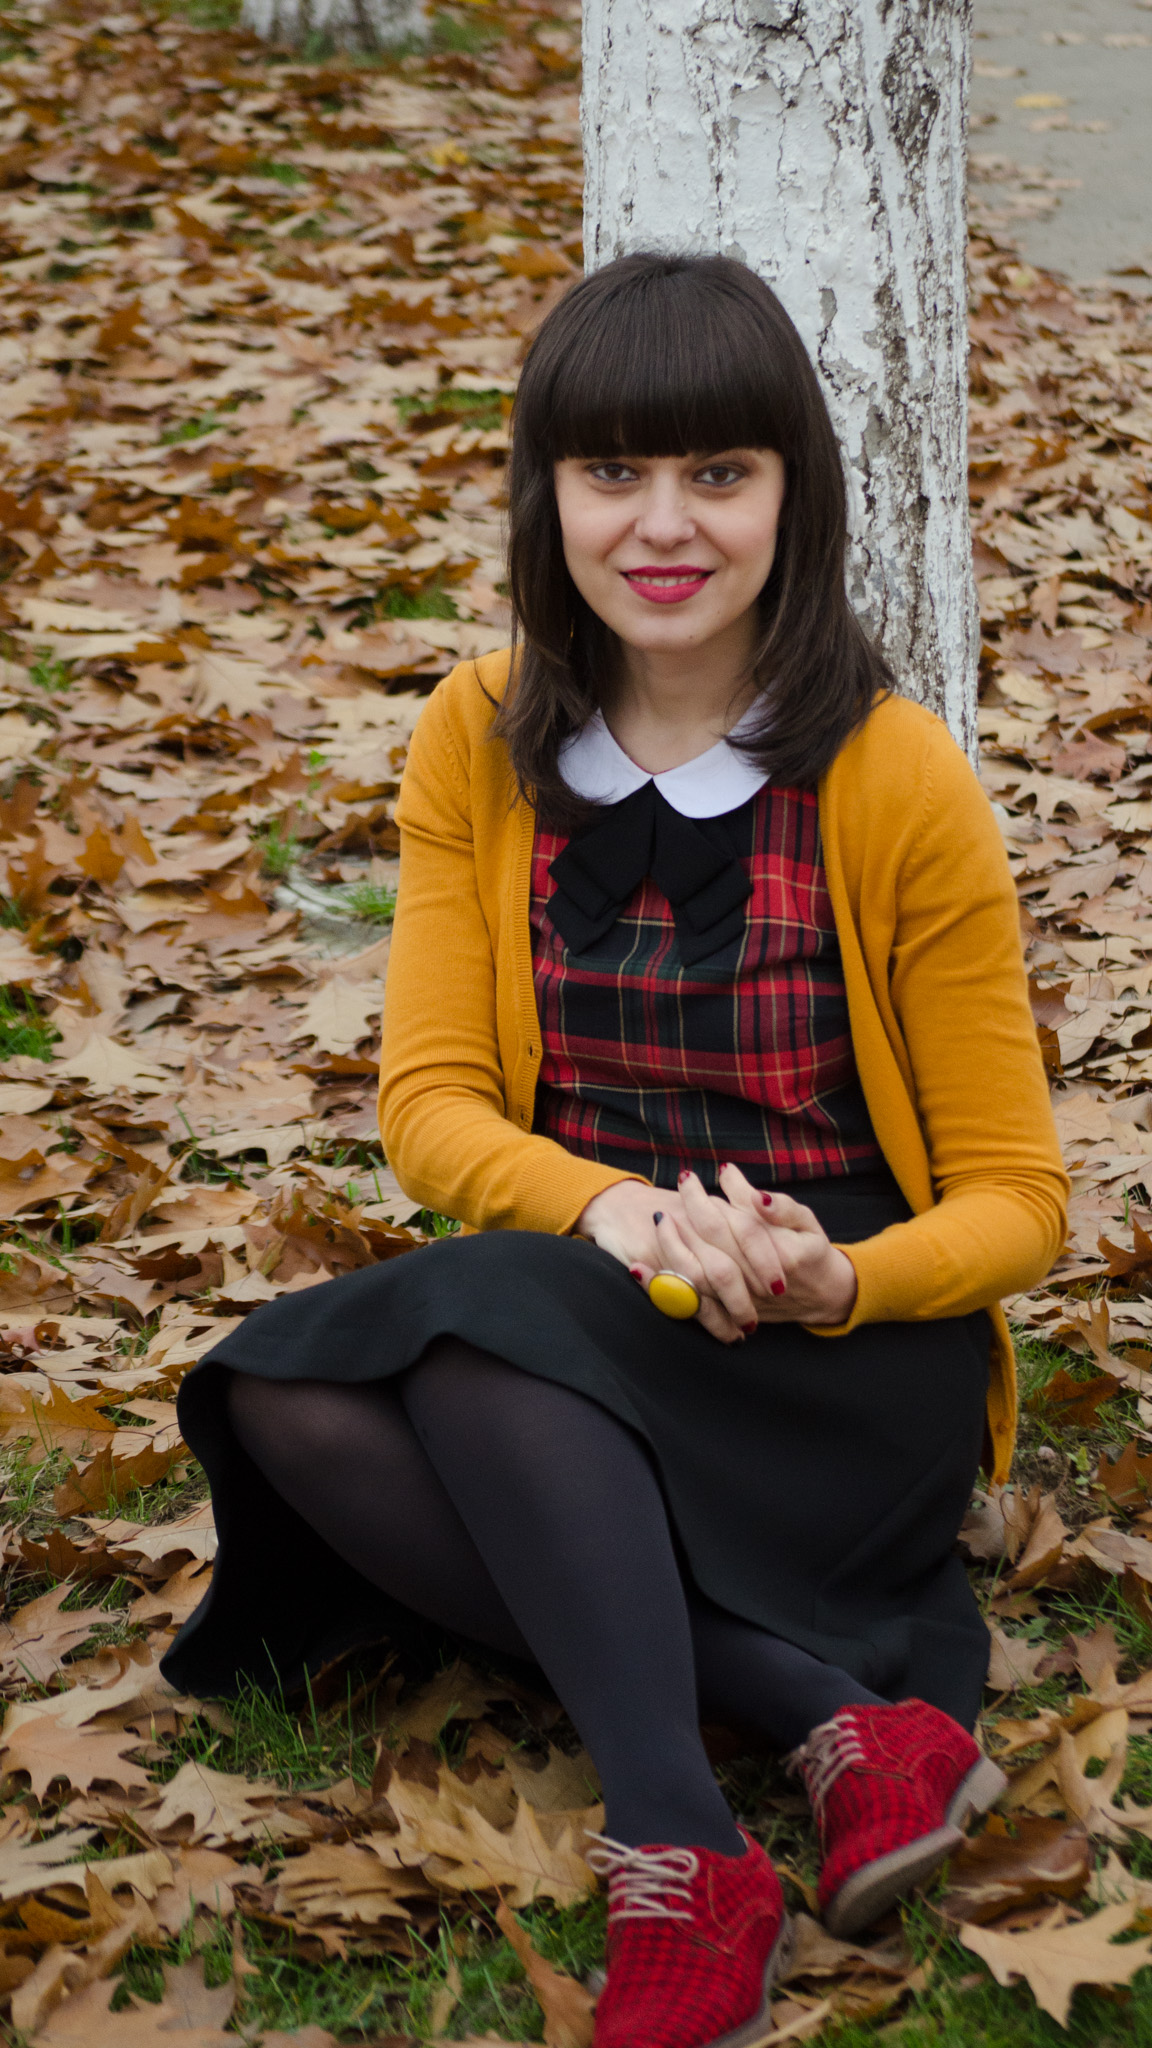 houndstooth oxfrod shoes mustard sweater tartan shirt peter pan collar black a-line skirt fall leaves school outfit bow